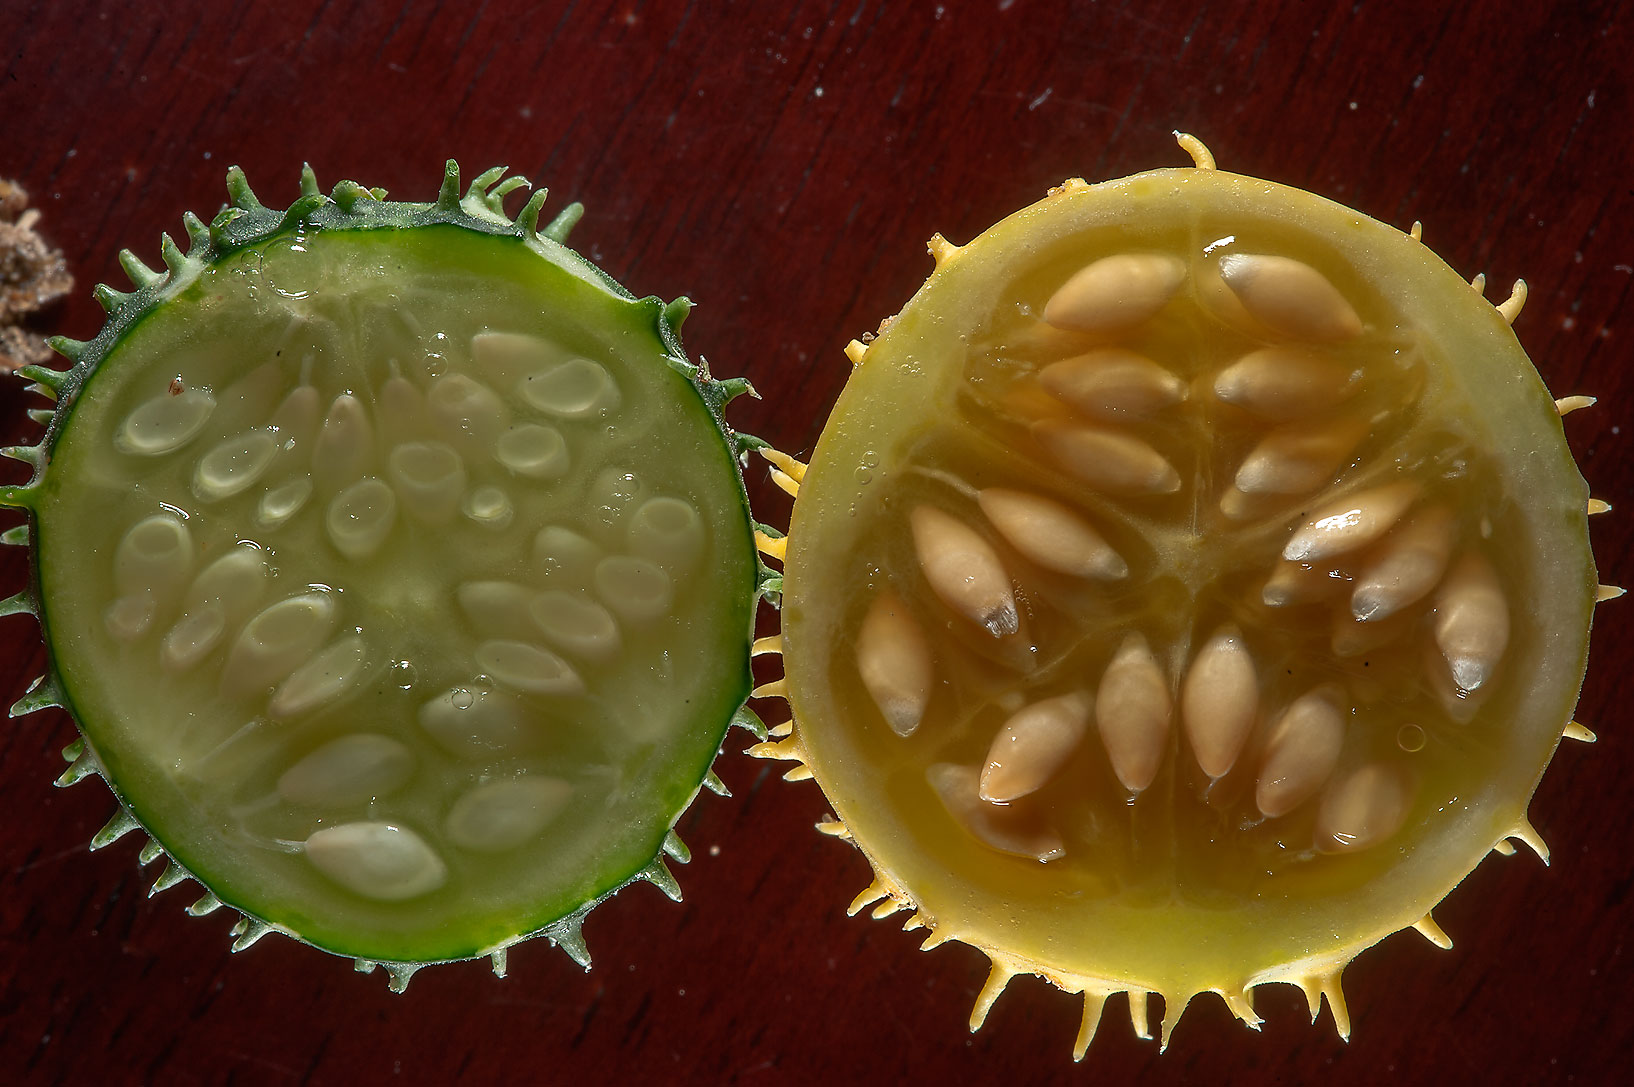 Dissected fruit of wild gourd (Cucumis...Al Numan) near Zubara. Northern Qatar